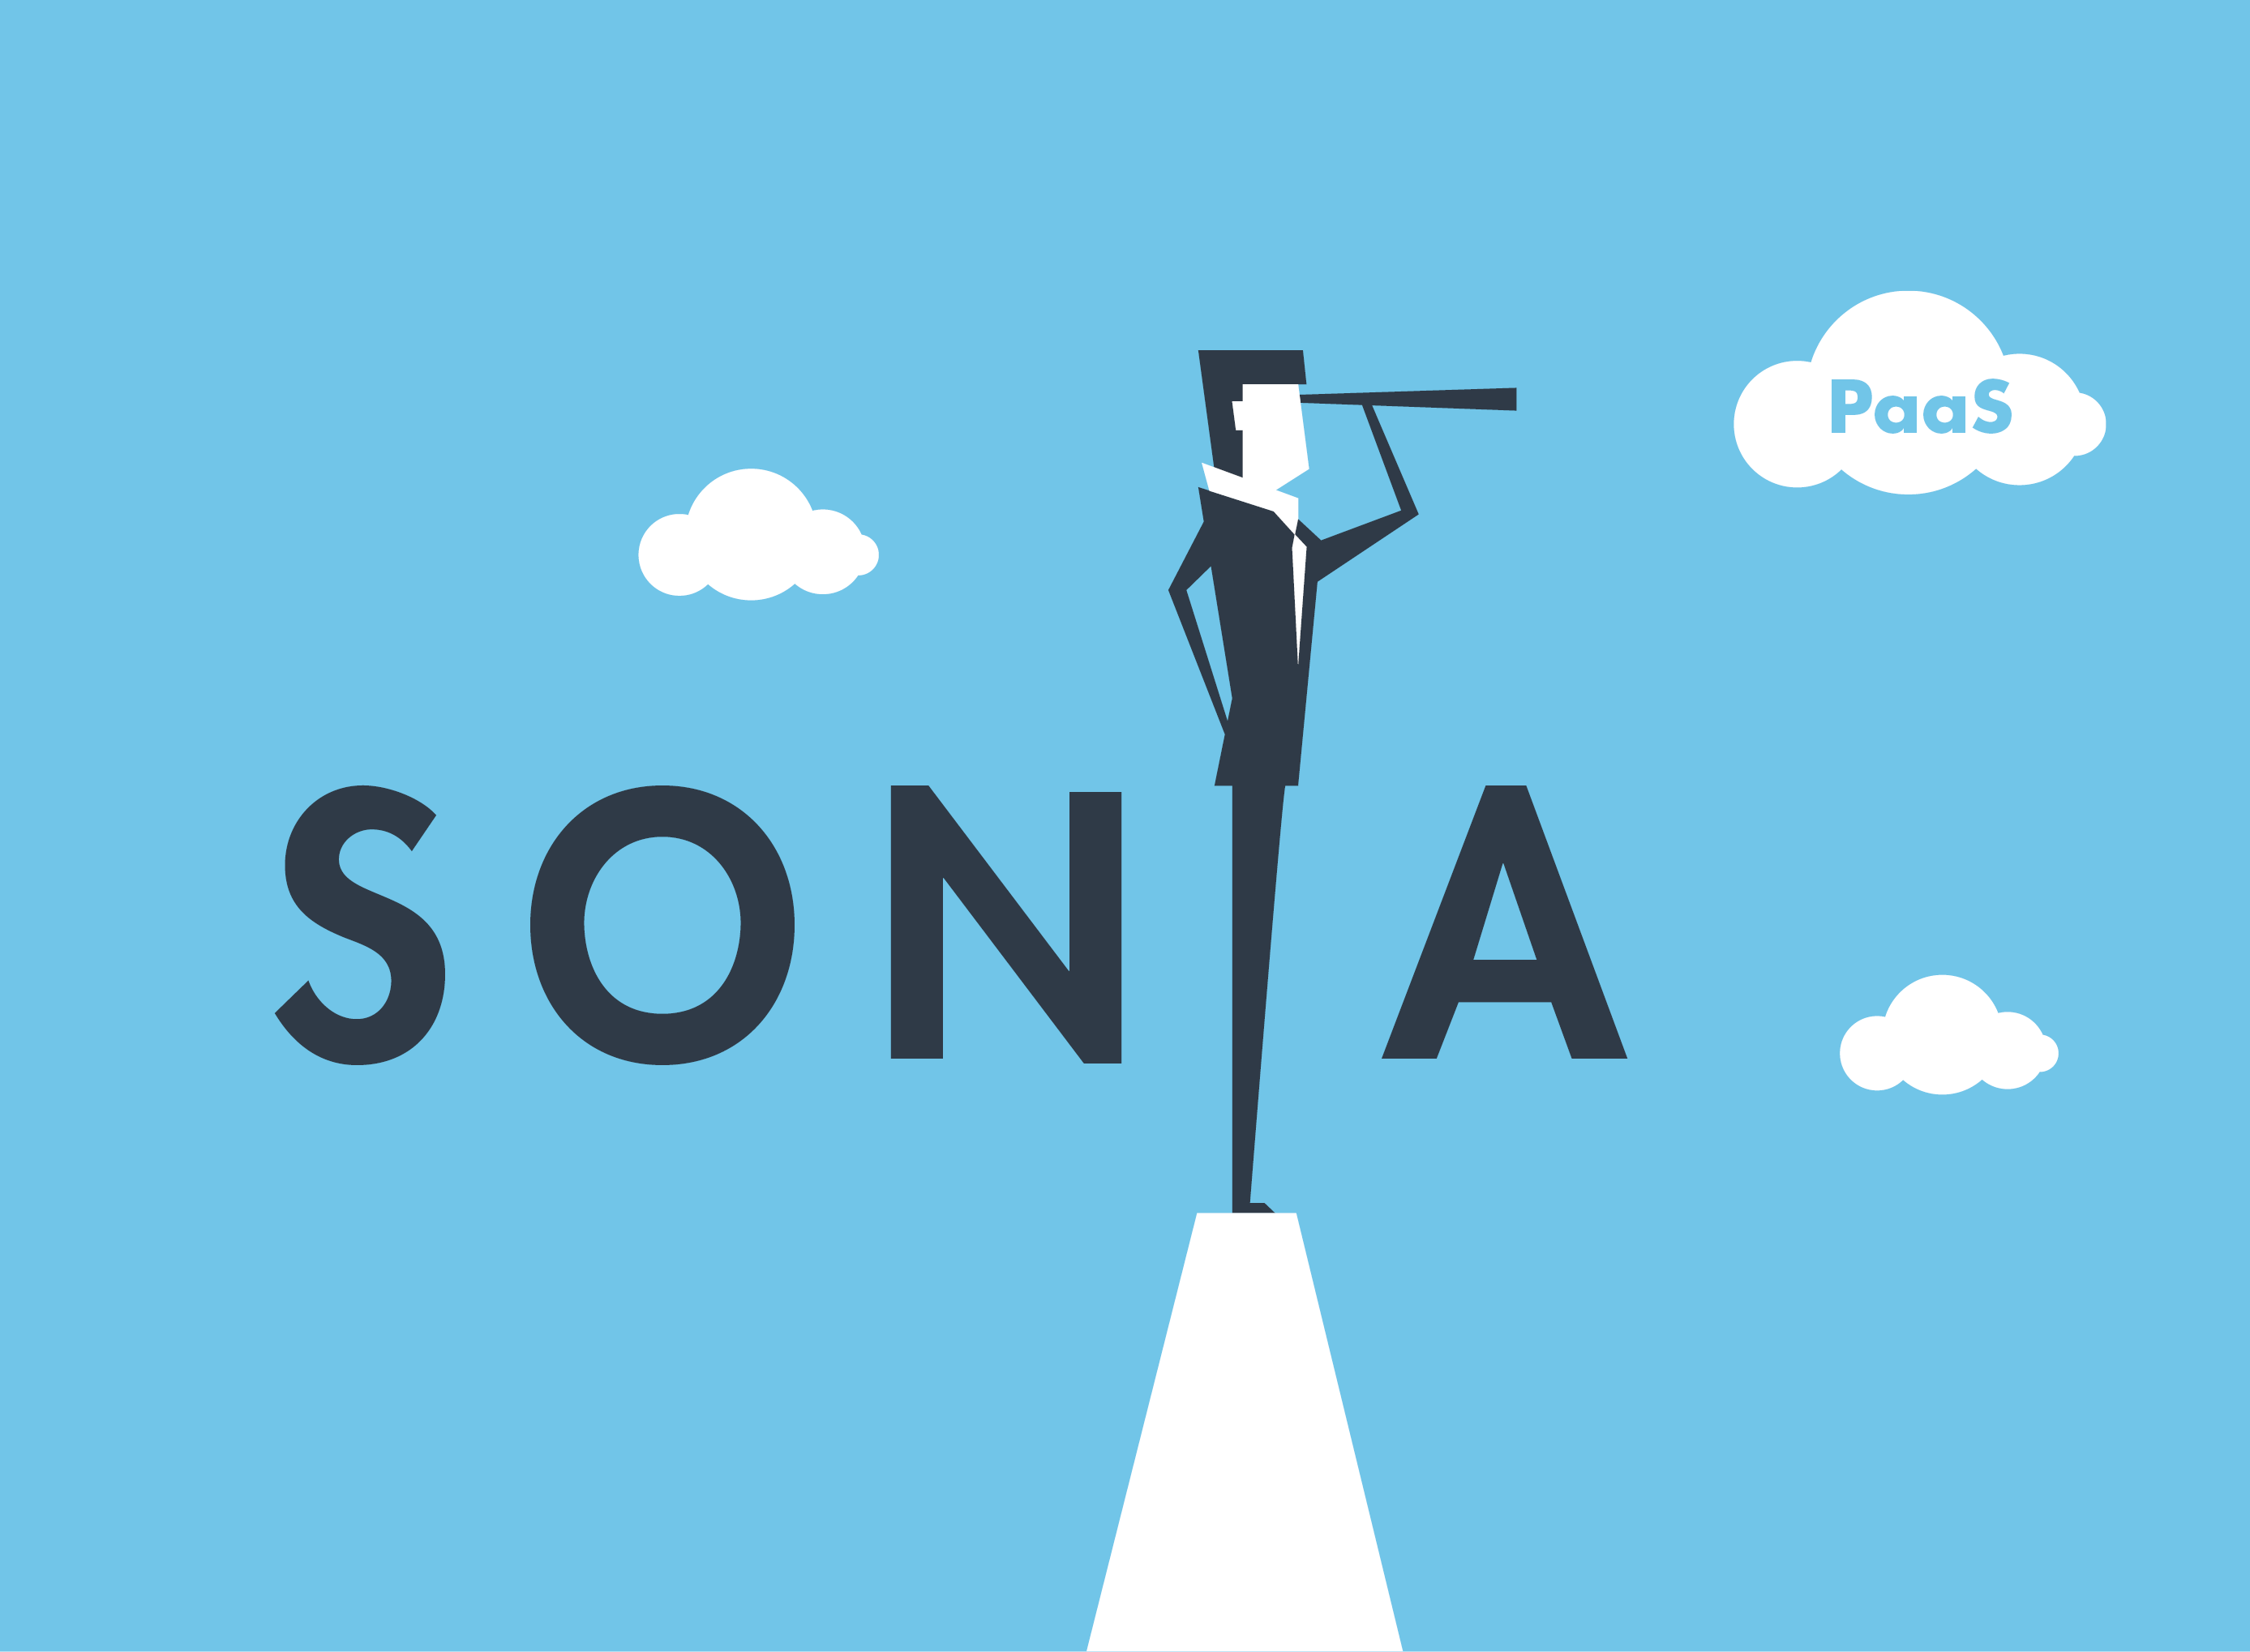 SONIA: Trading Opportunities in an Emerging Benchmark